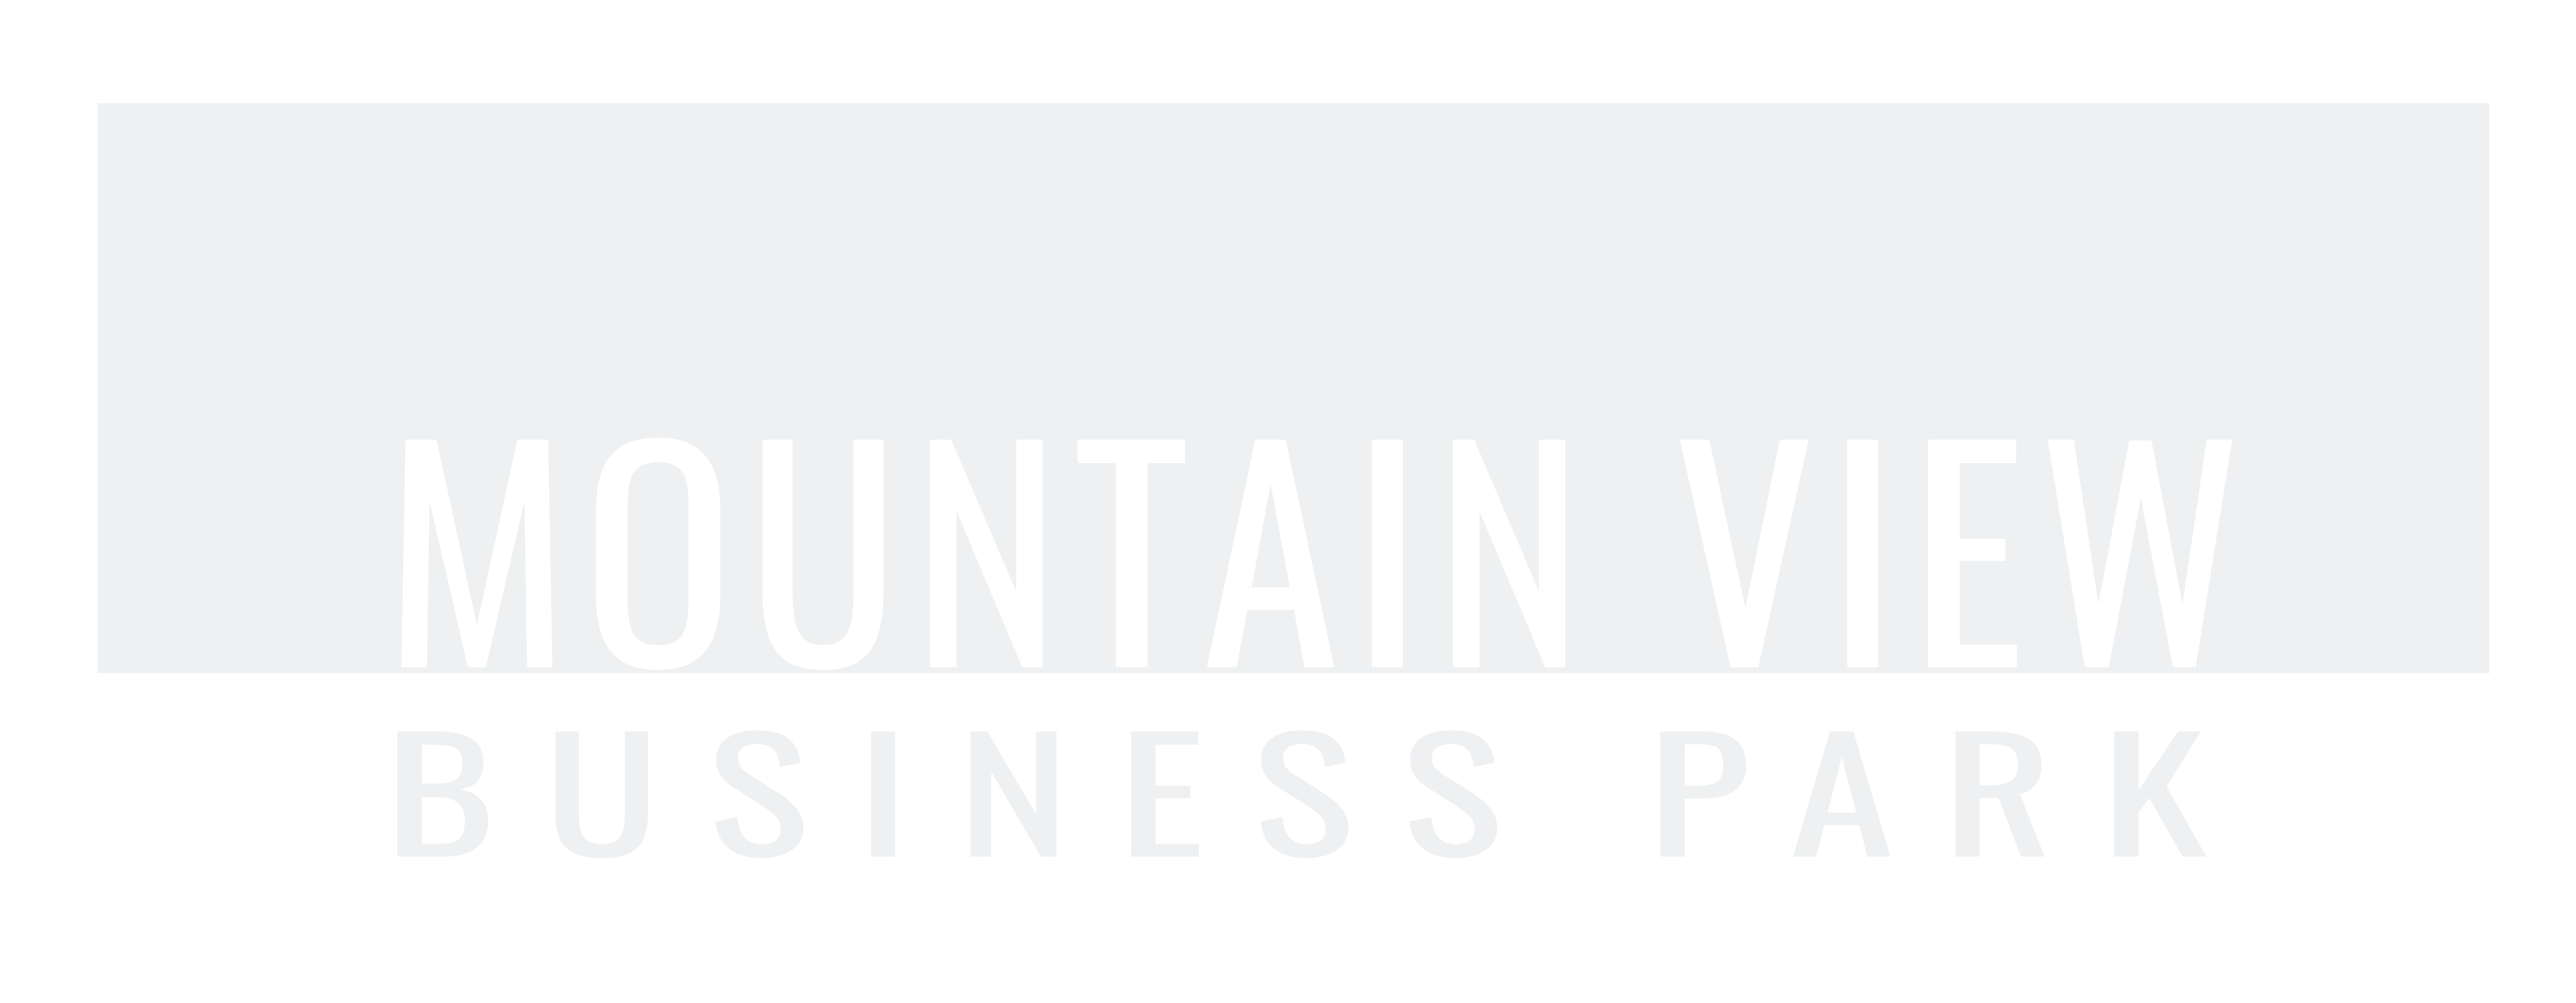 Mountain View Business Park